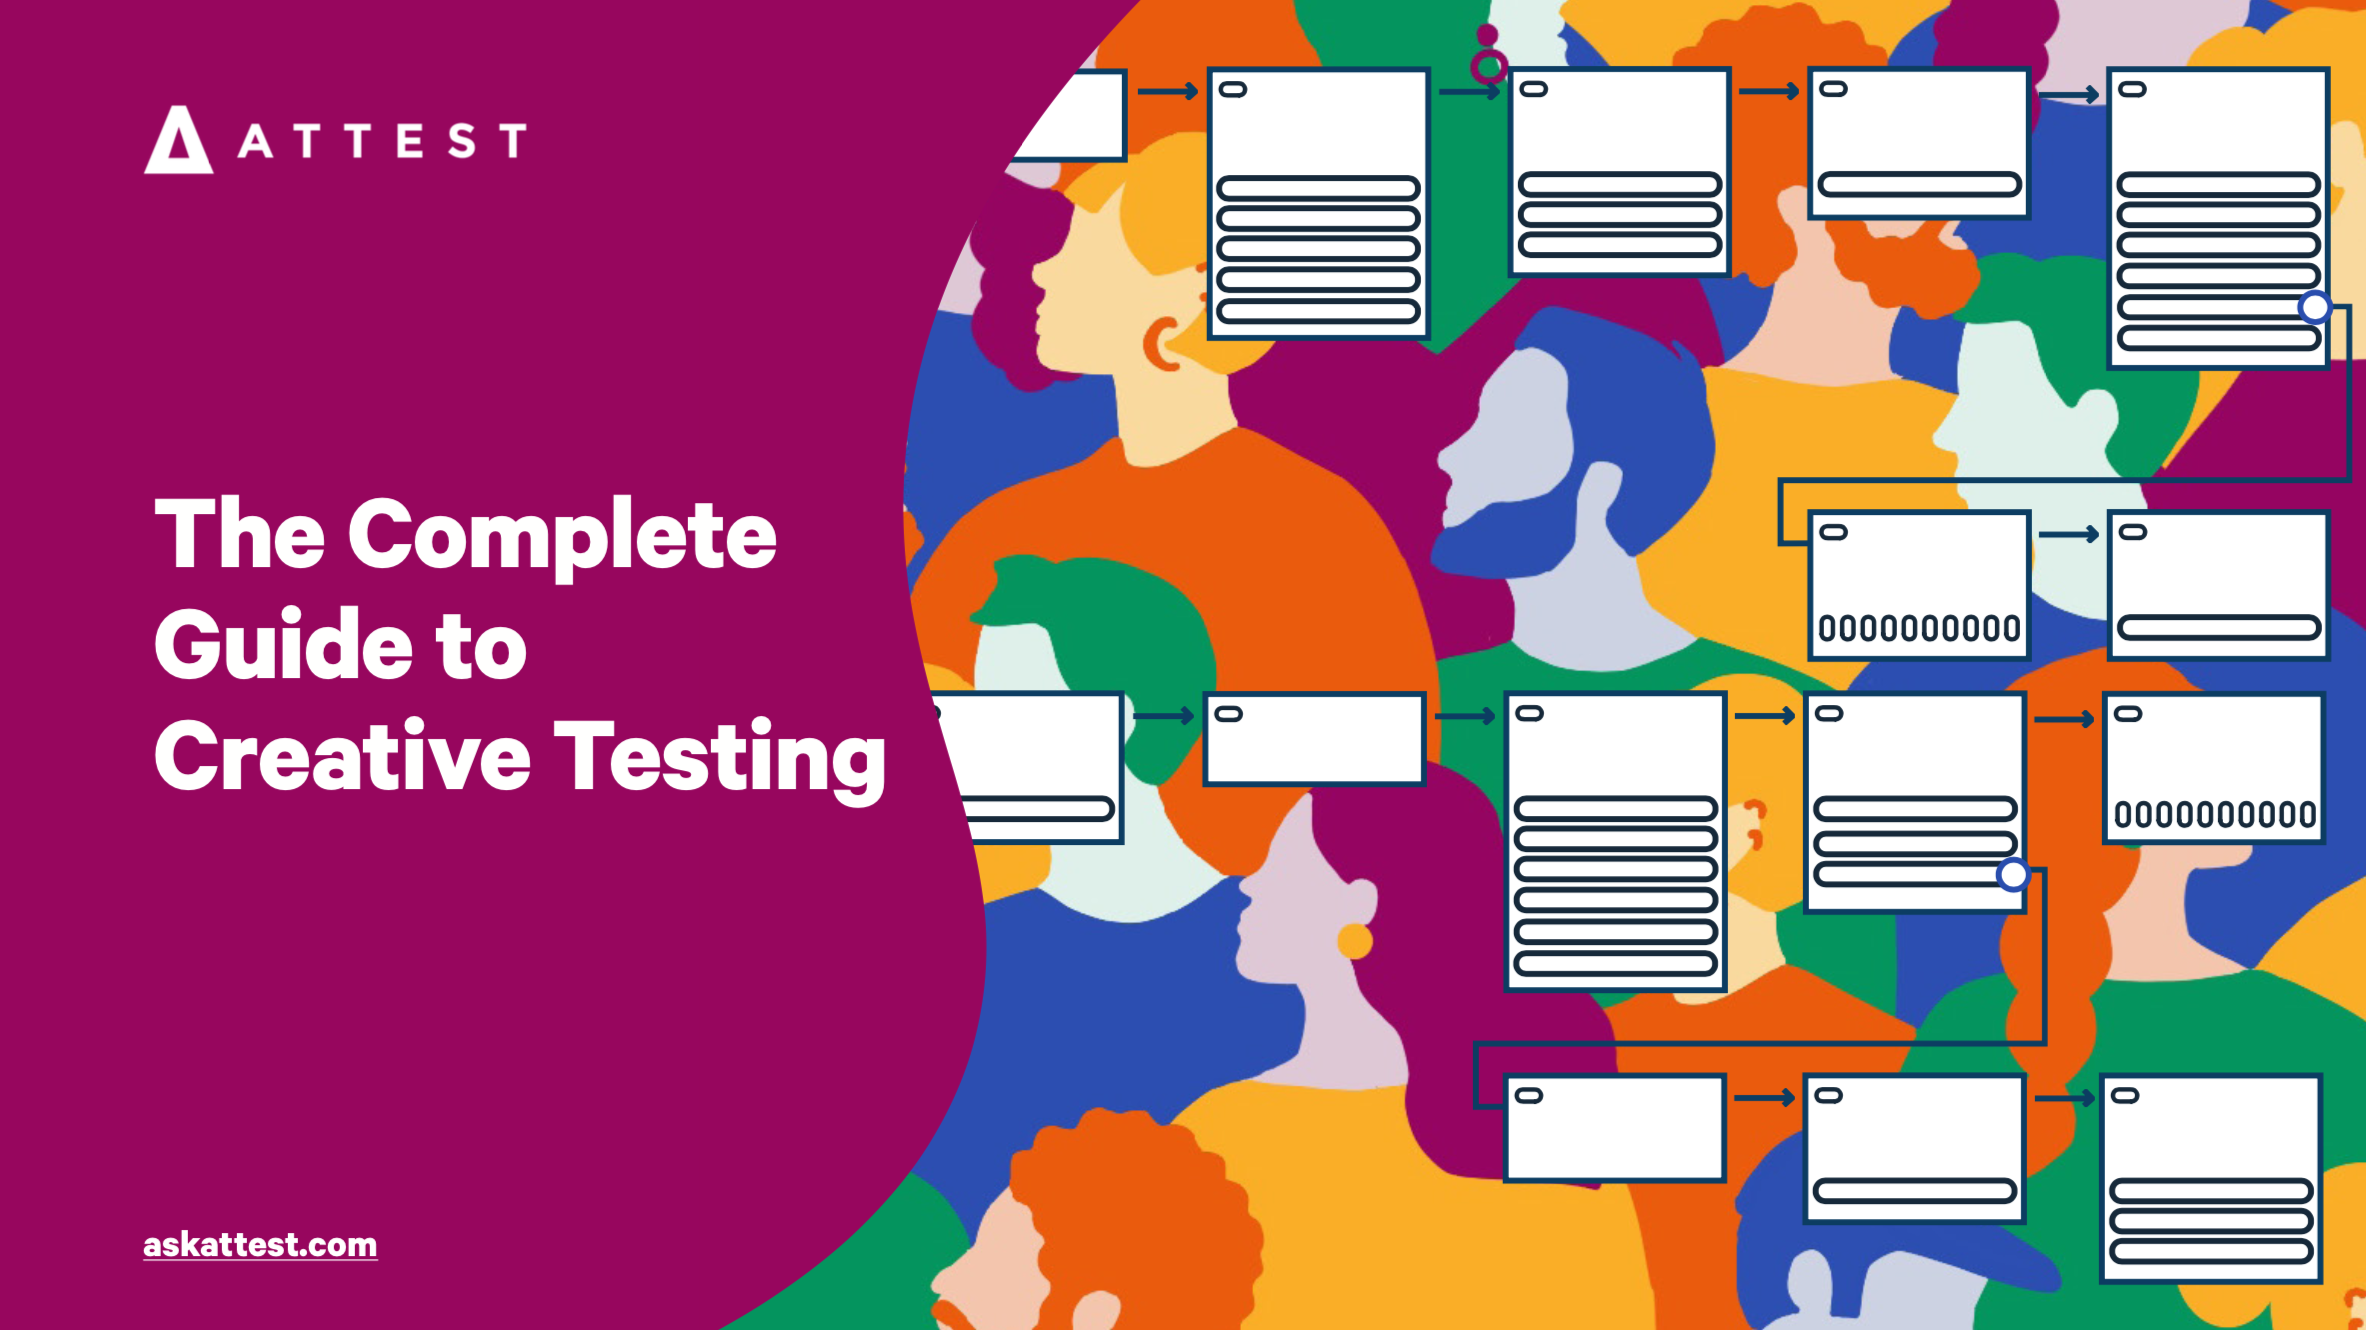 The Complete Guide to Creative Testing